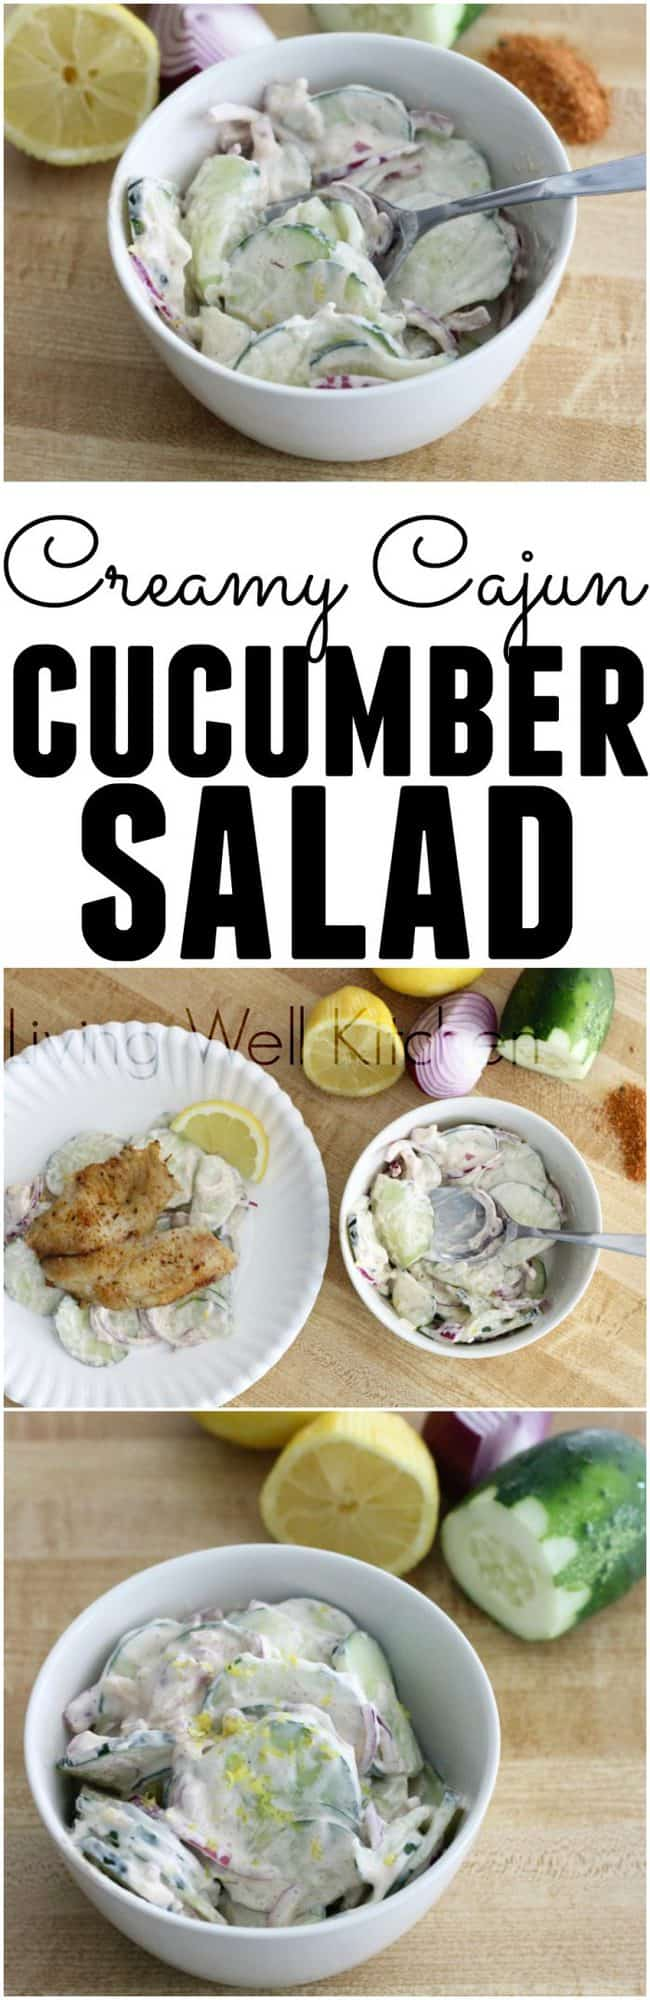 Creamy Cajun Cucumber Salad from @memeinge is an easy, spicy, and fresh side dish great for the summer. Gluten free, egg free, and only 7 simple ingredients